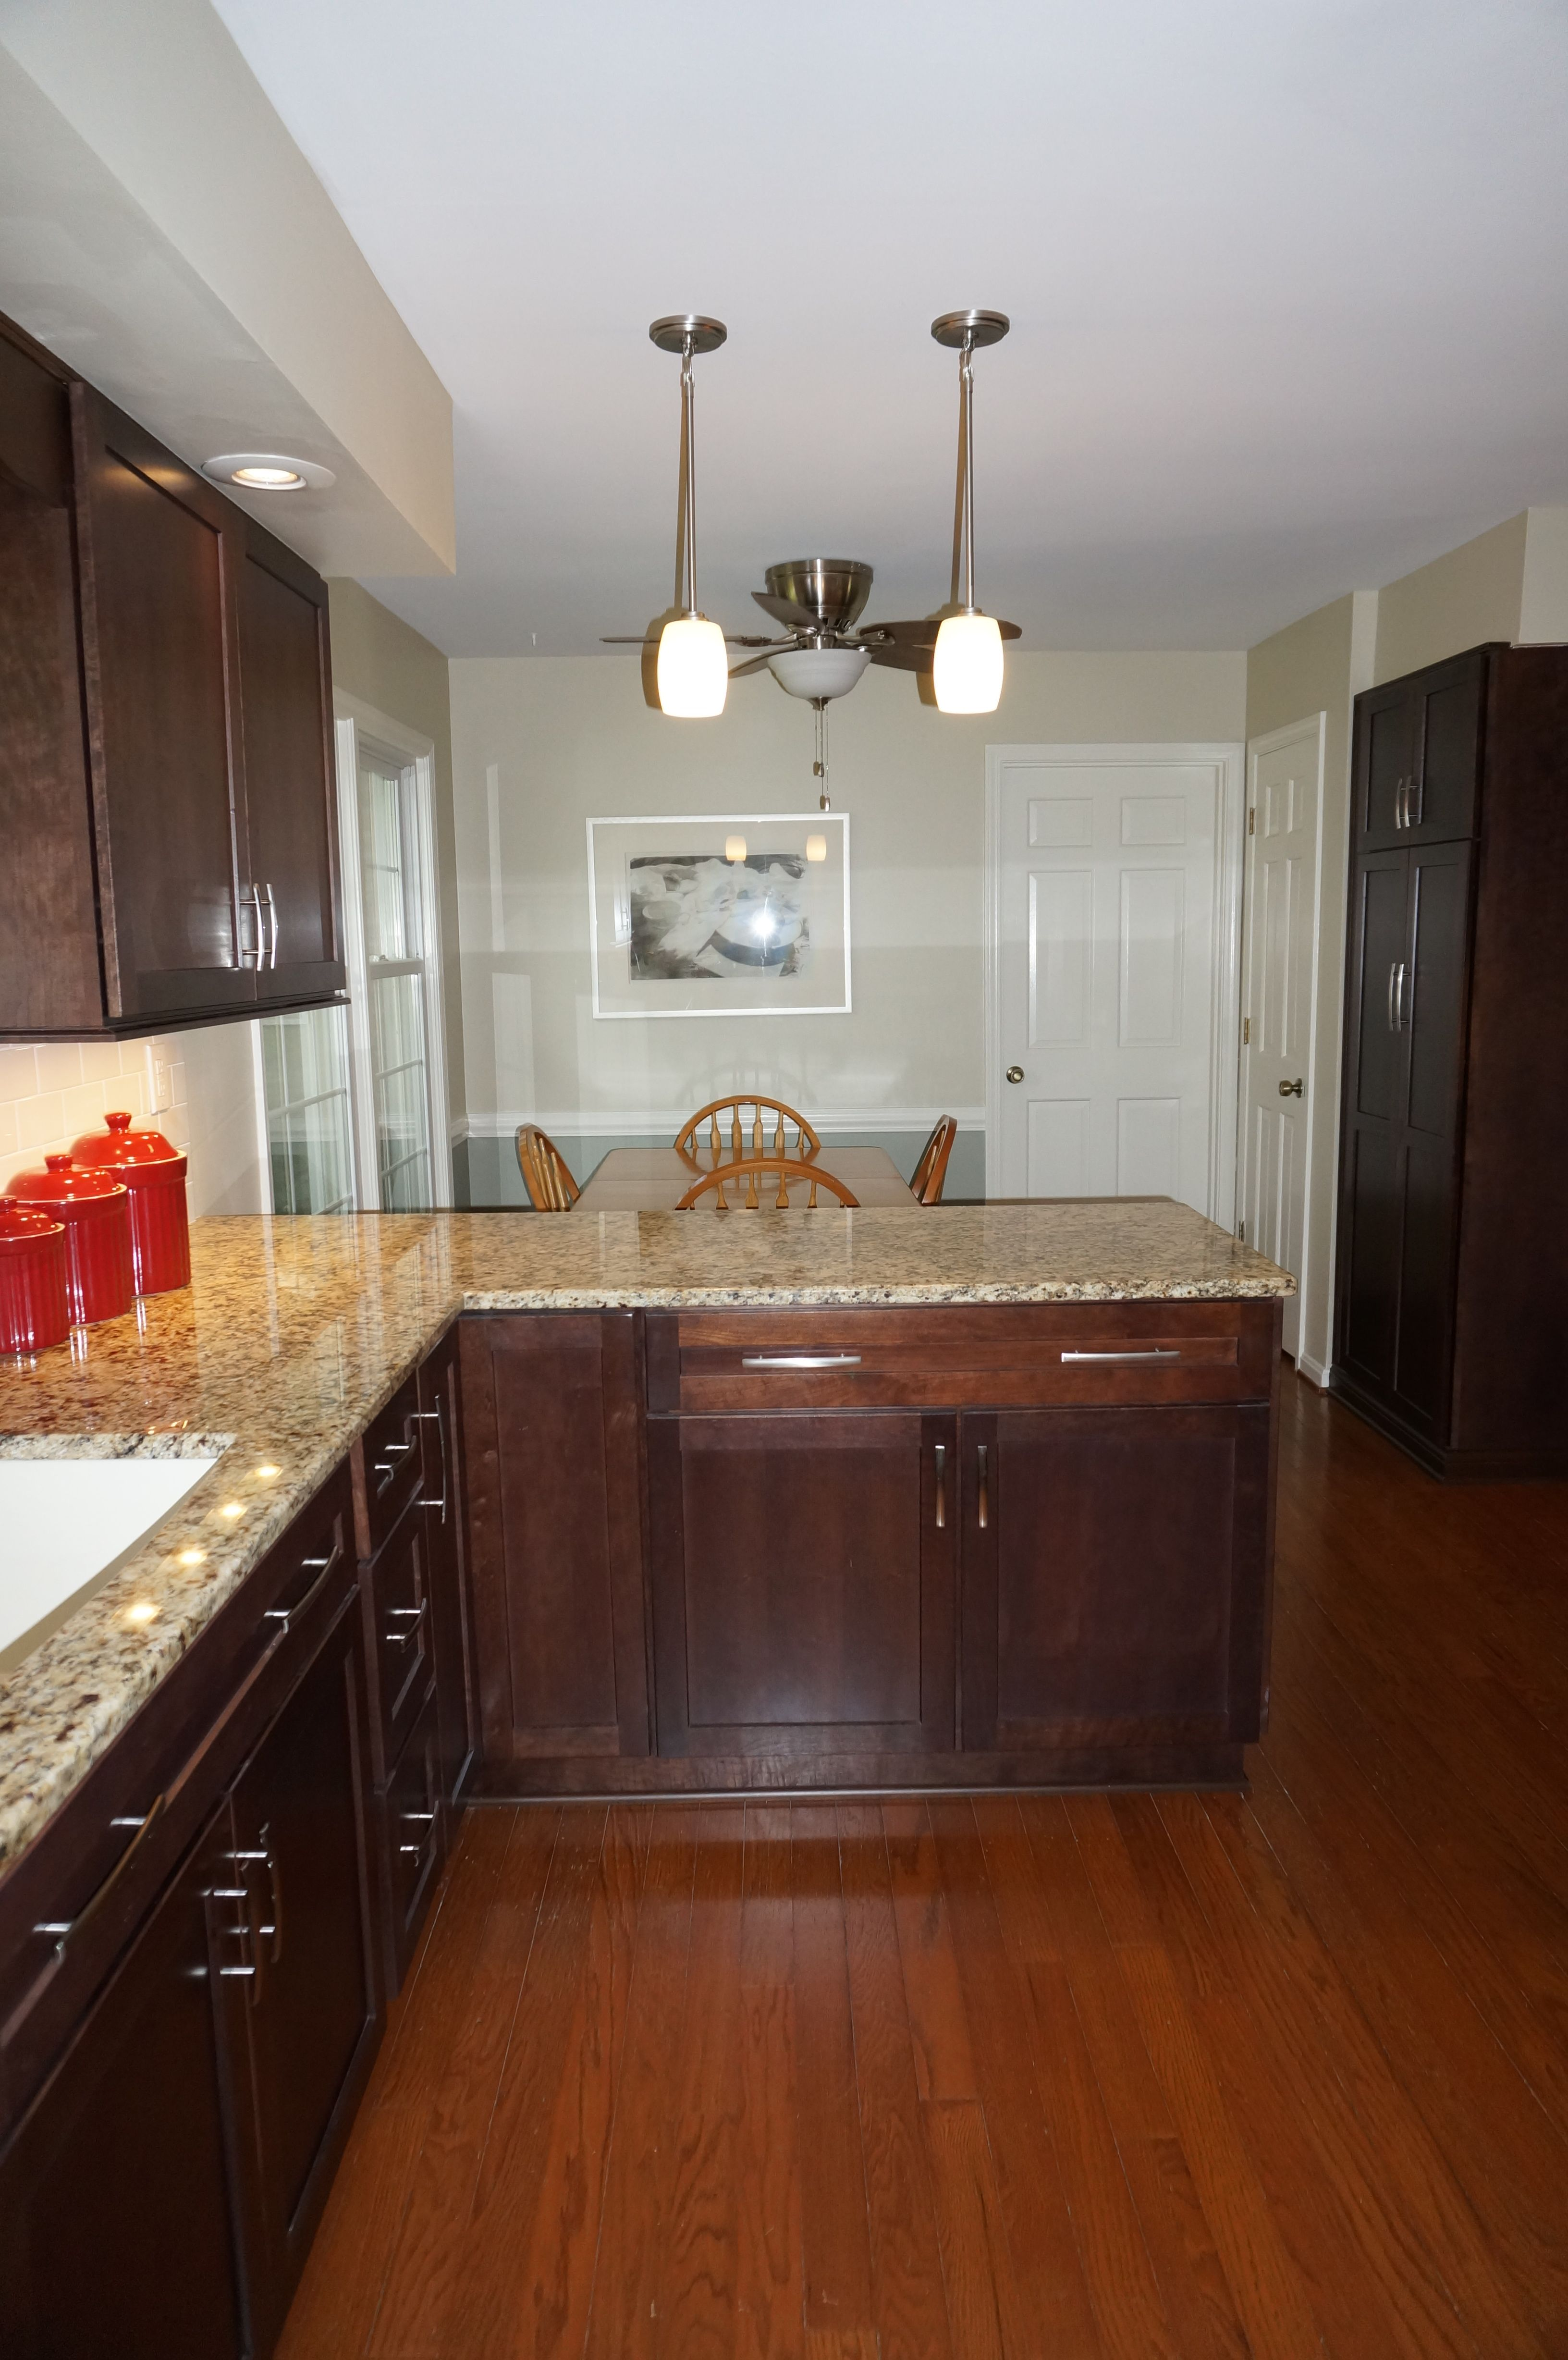 Merillat Classic Cabinetry Cherry with Pecan Stain Full